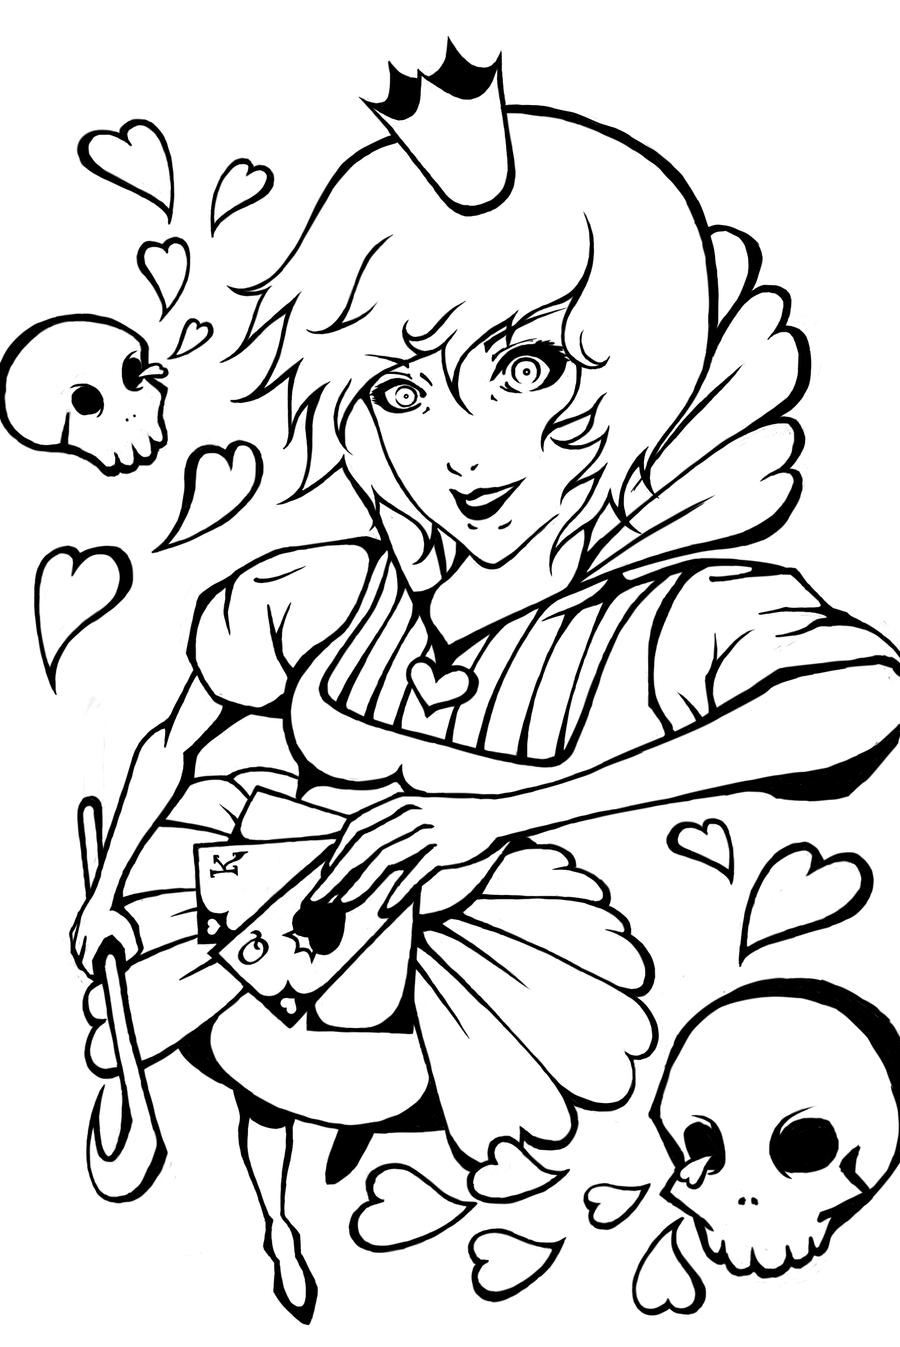 Queen Of Hearts Anime Coloring Pages Sketch Coloring Page